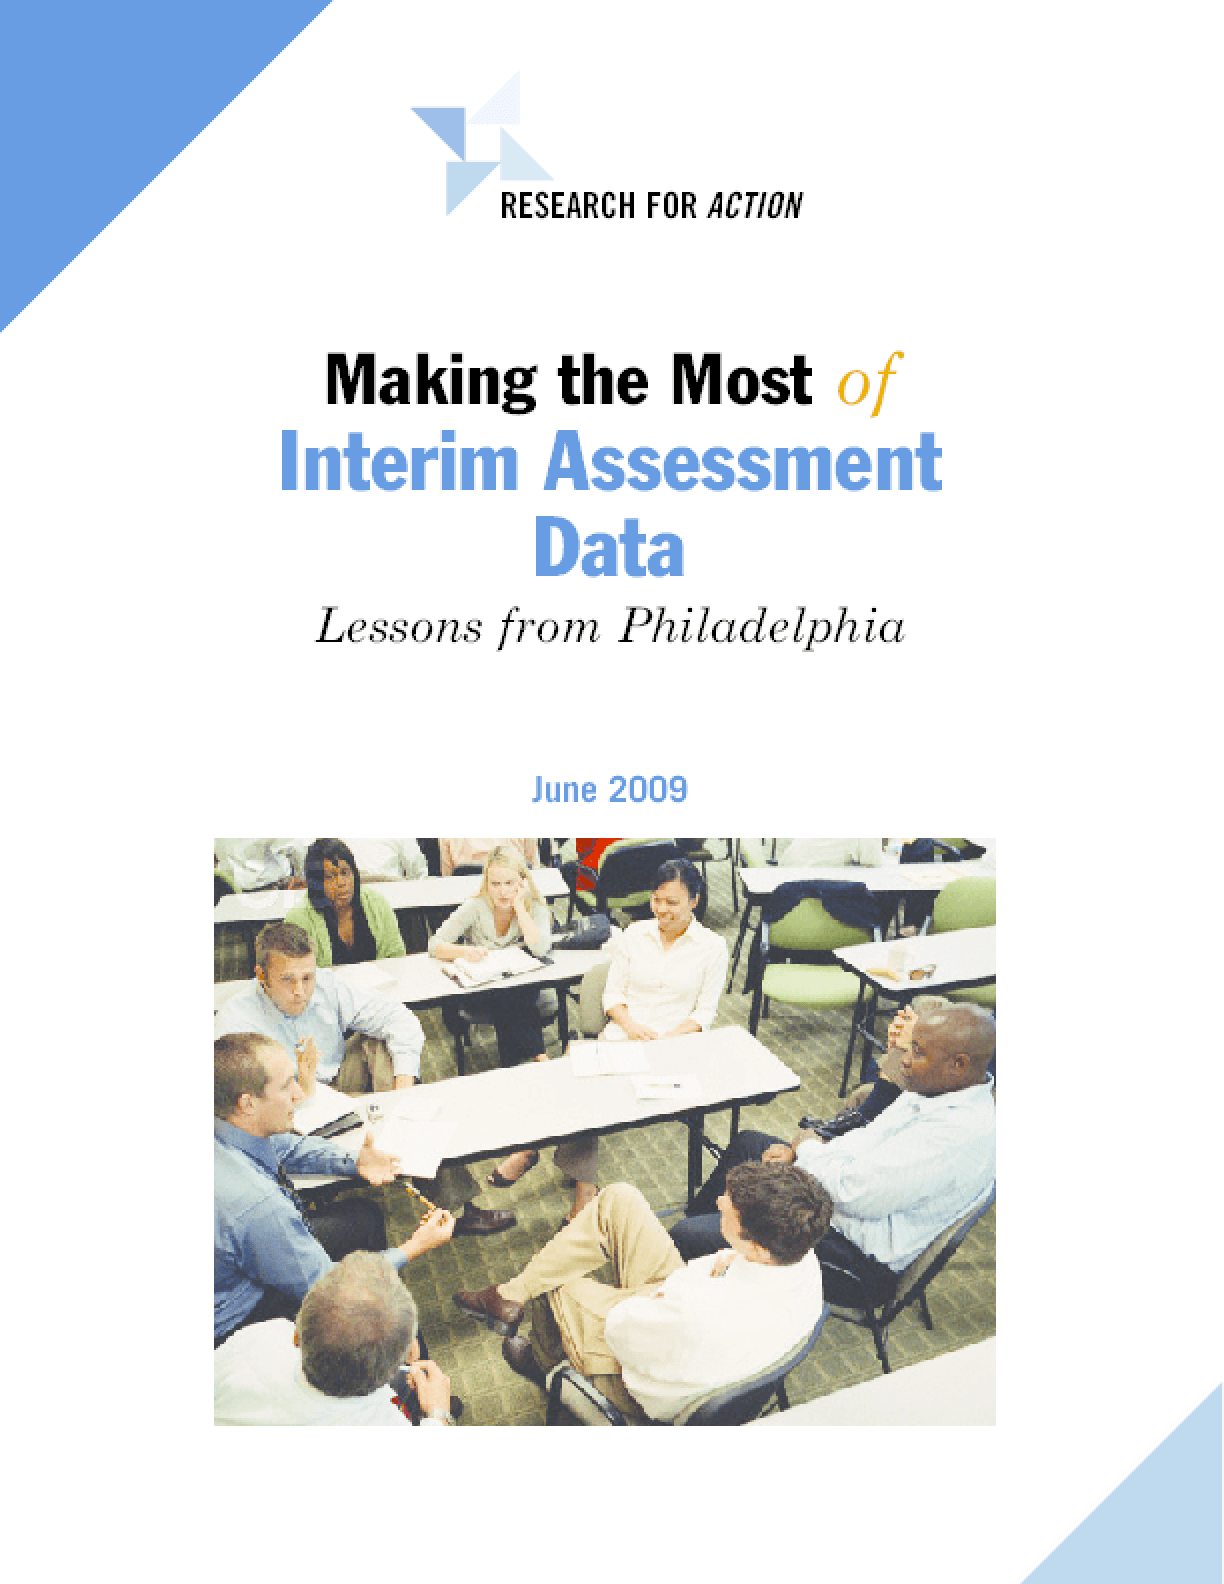 Making the Most of Interim Assessment Data: Lessons from Philadelphia